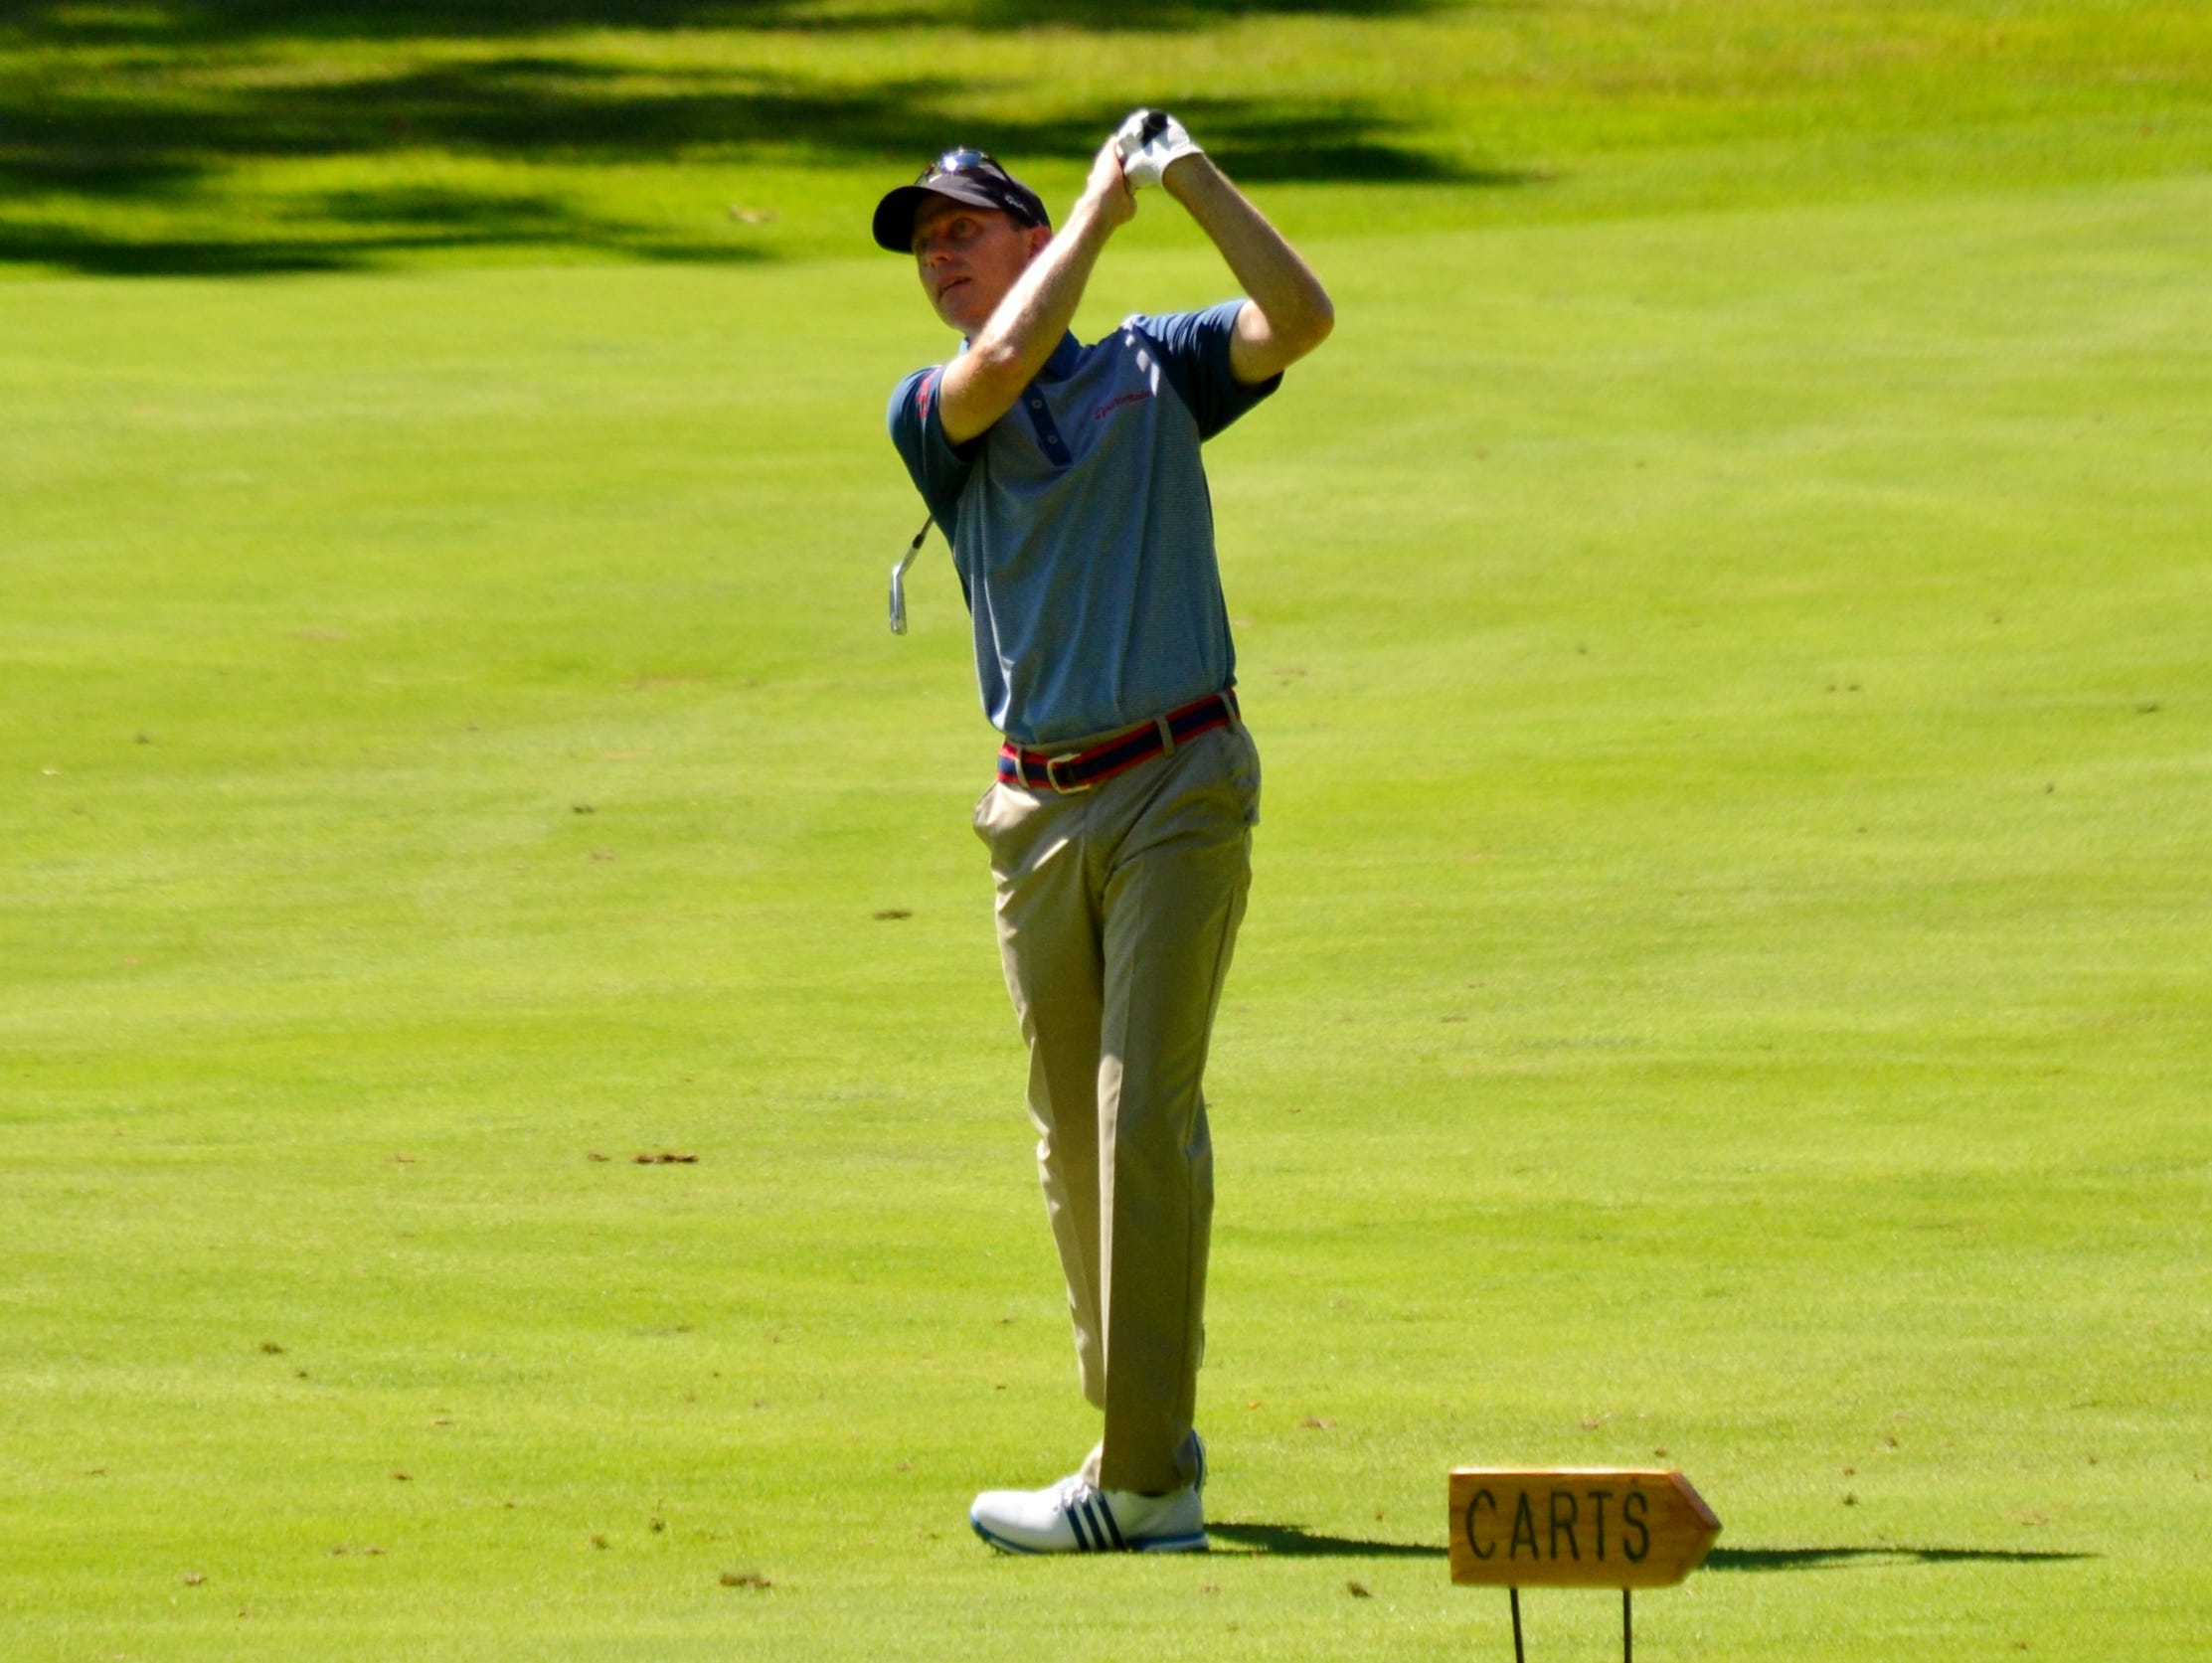 Quaker Ridge head pro Brian Gaffney shot a 4-under 68 in the first round of the Westchester Open and is tied for fifth.